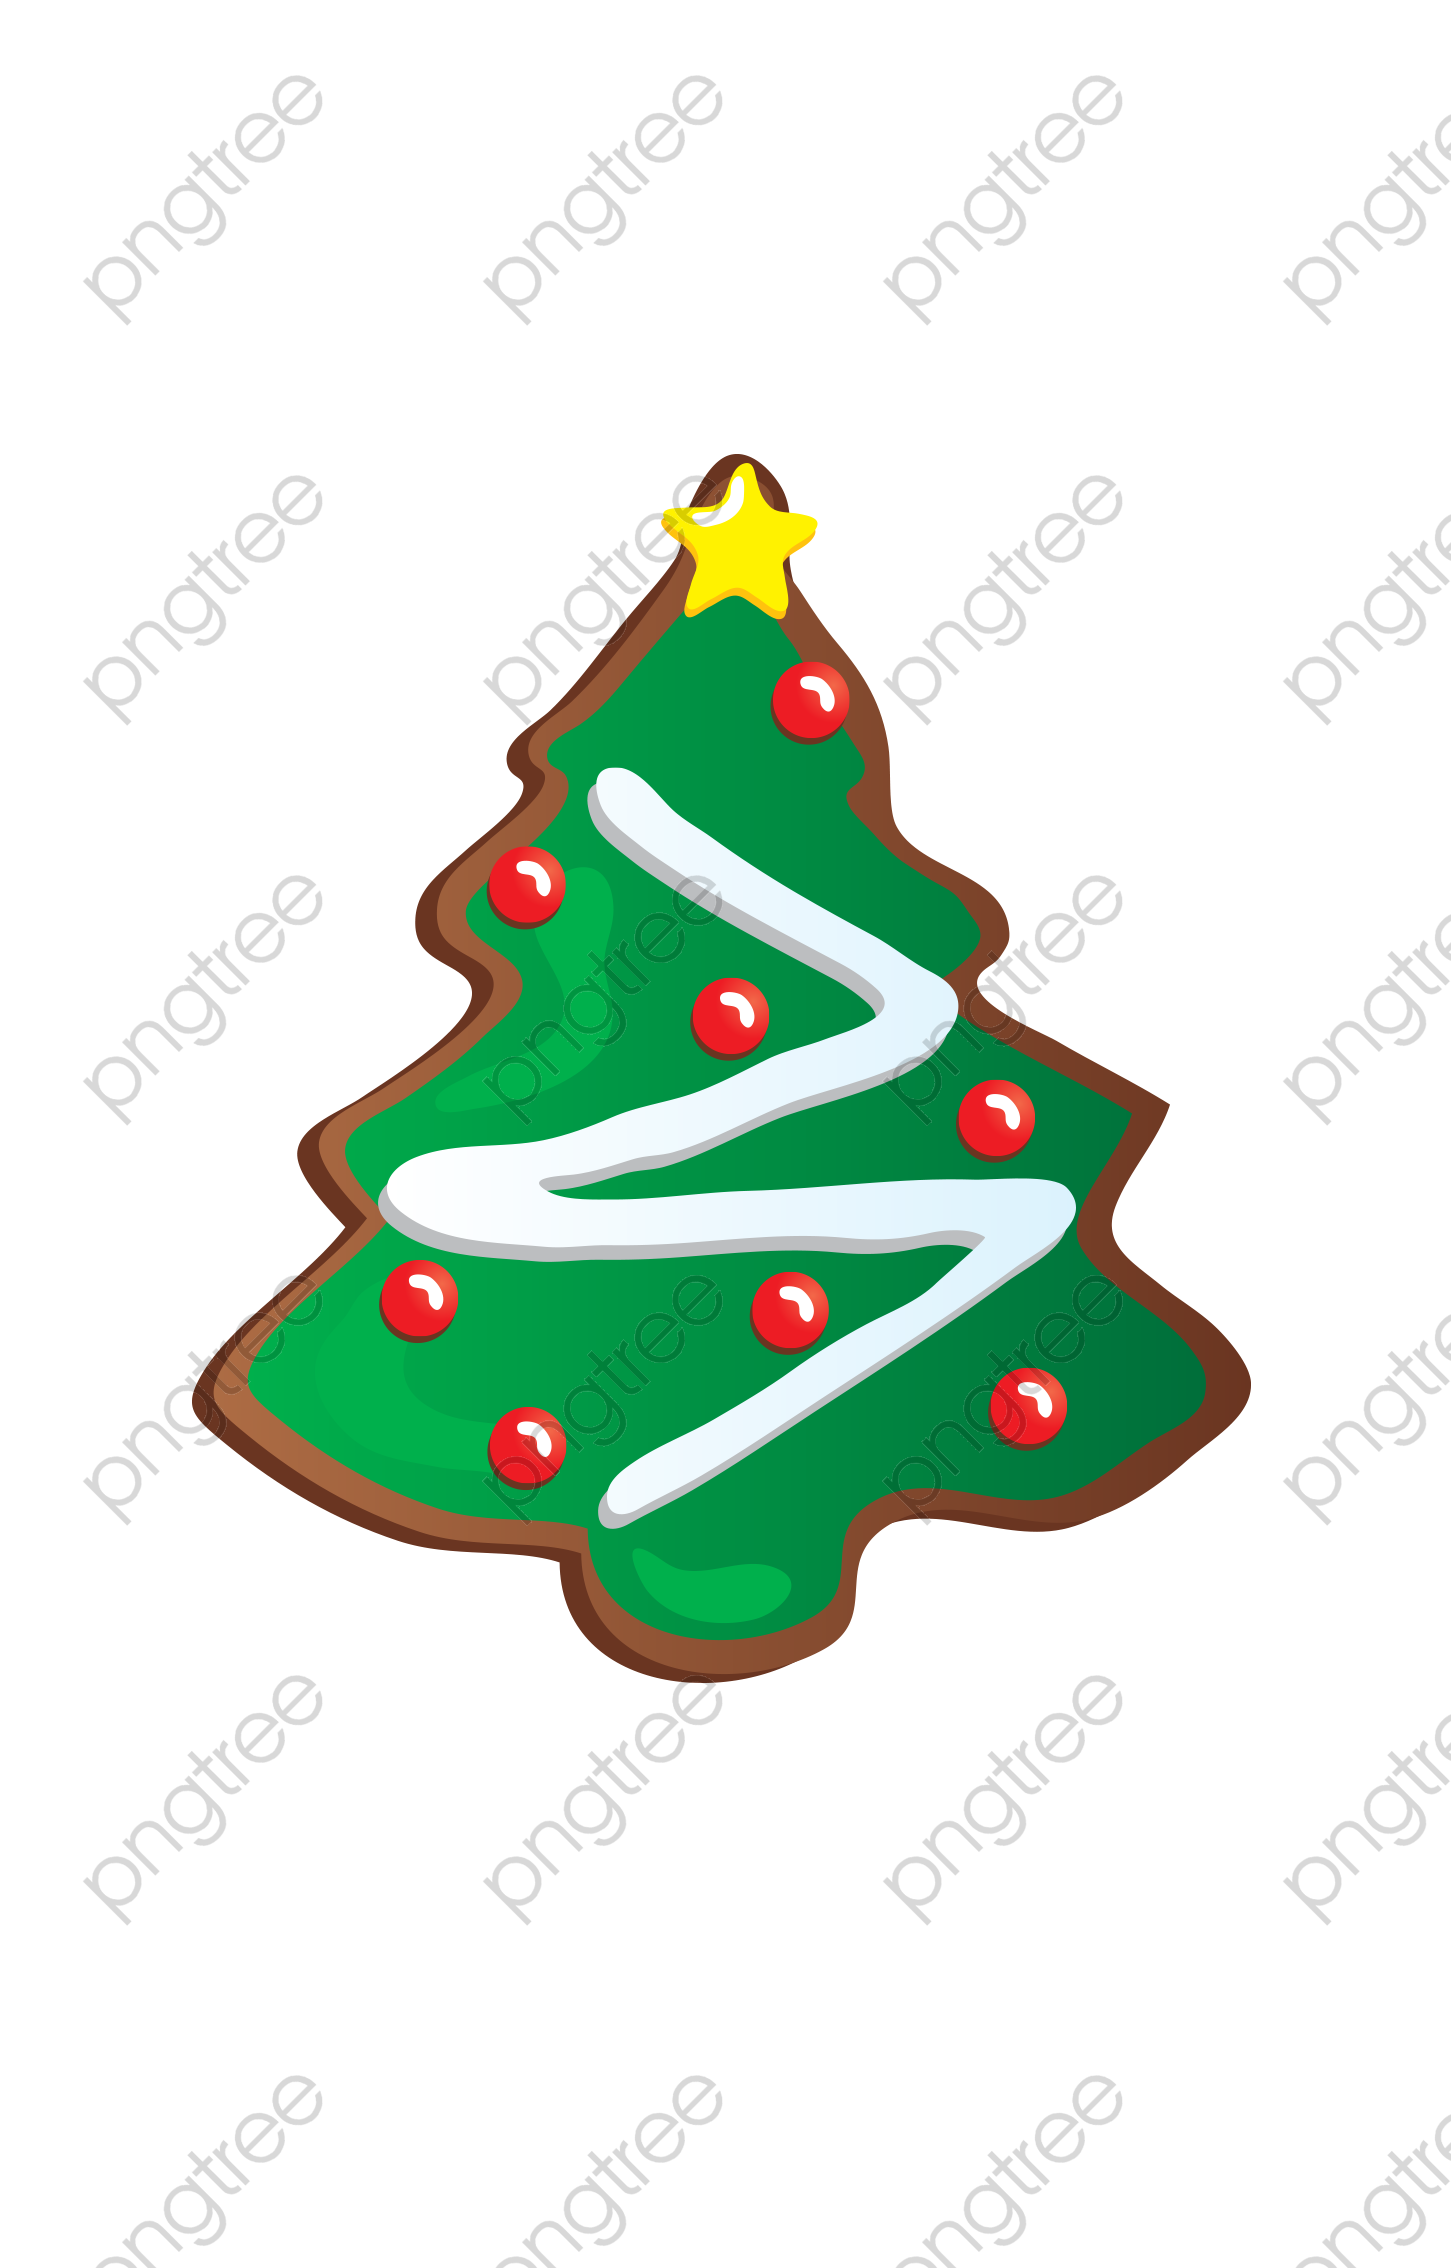 Transparent christmas crackers PNG Format Image With Size 1451*2268.